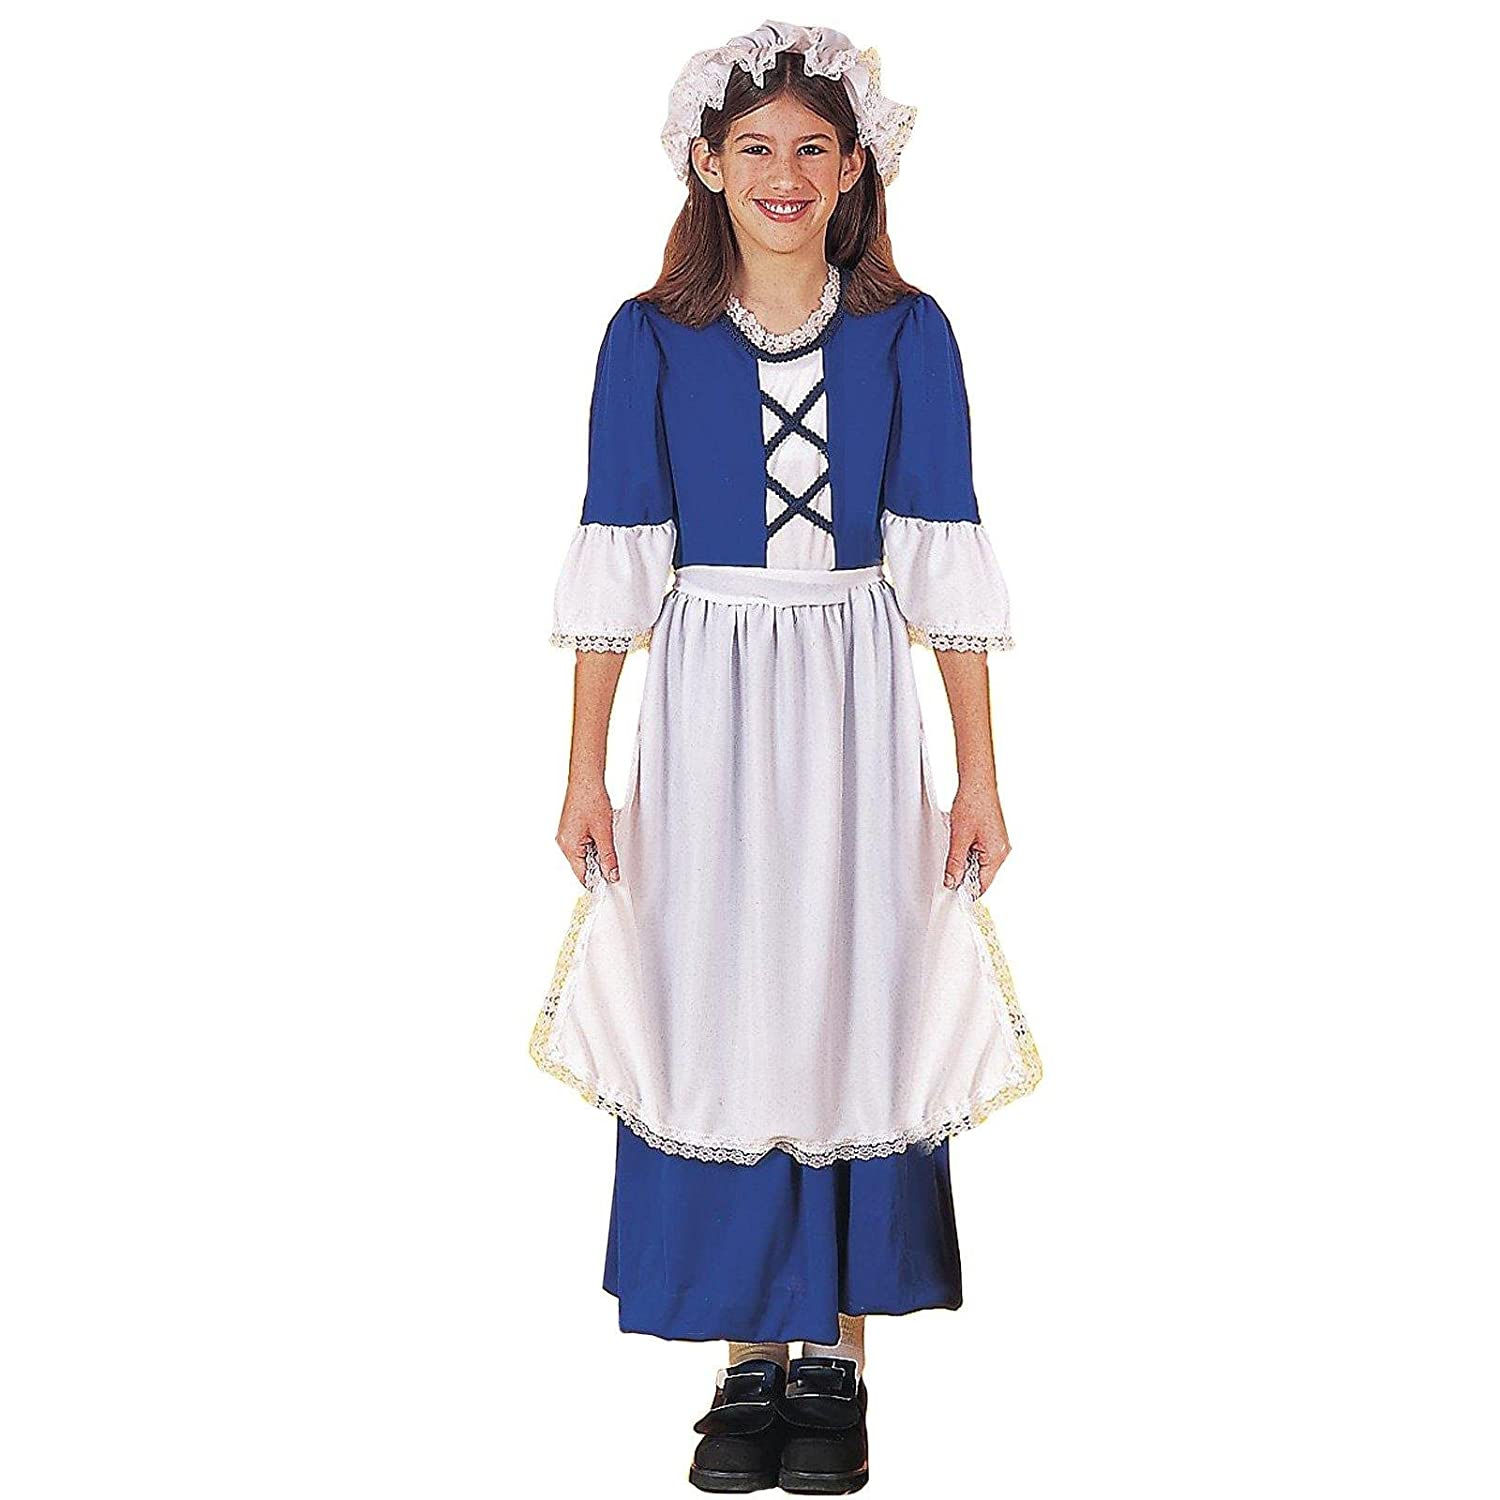 Download image 1700s woman portrait pc android iphone and ipad - Amazon Com Forum Novelties Colonial Girl Costume Child S Small Toys Games